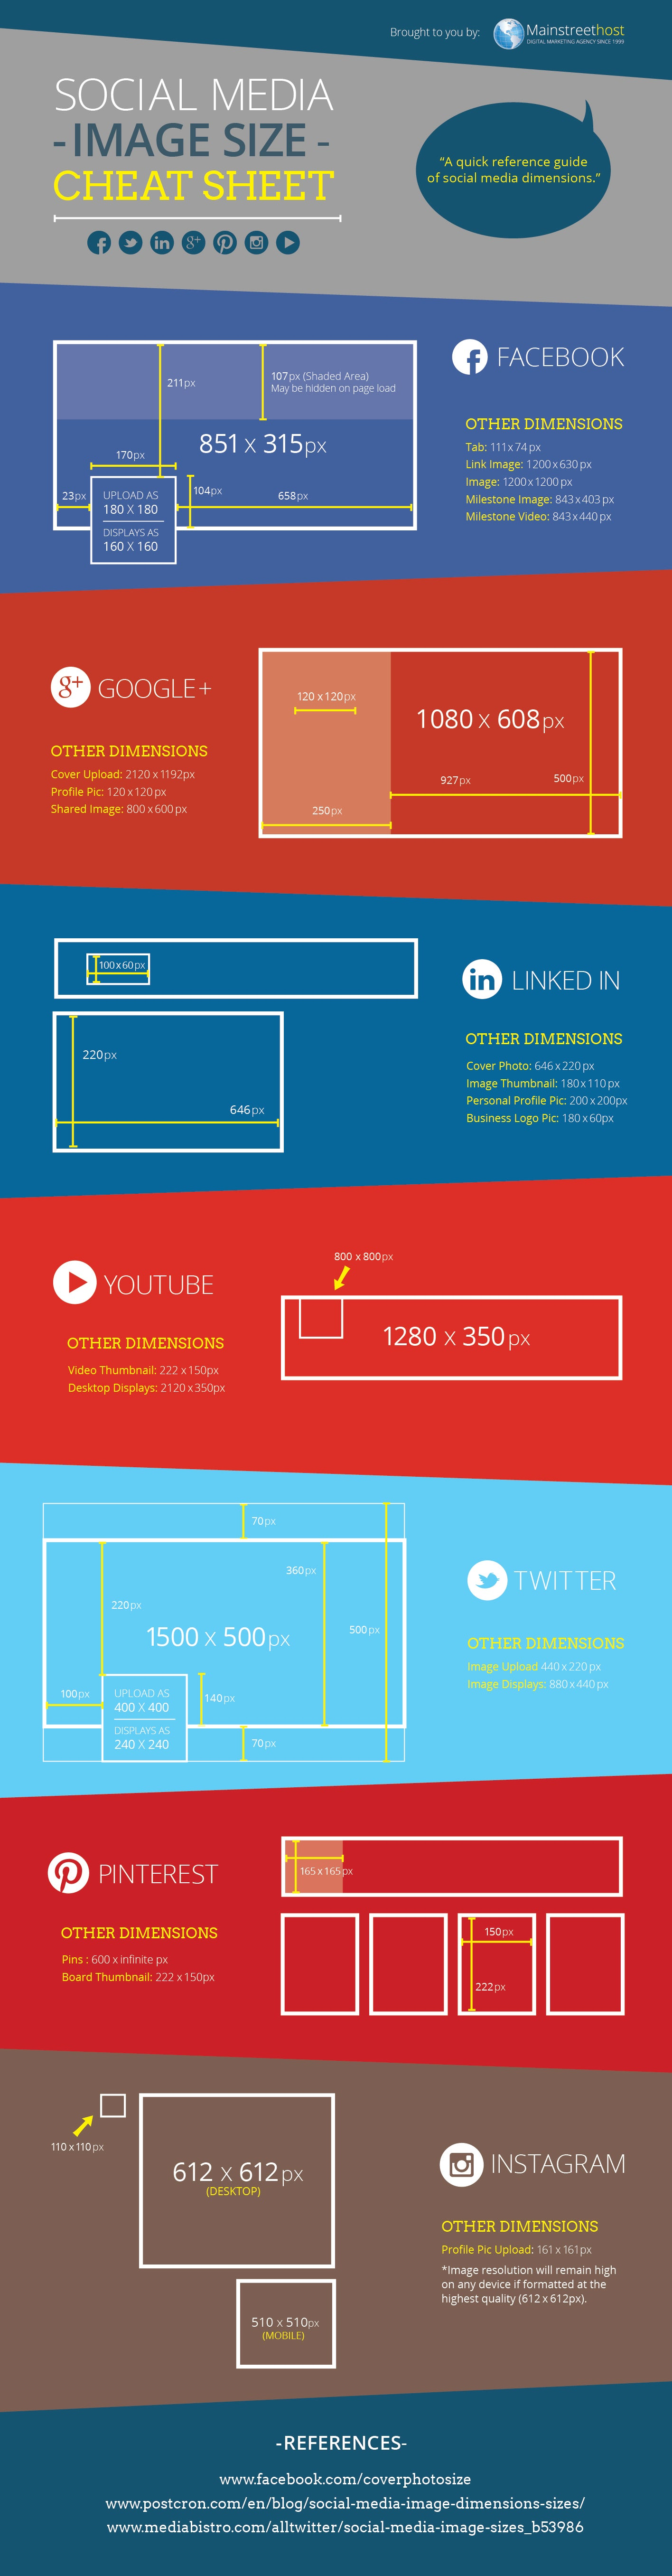 The Correct Dimensions for Images on Different Social Networks